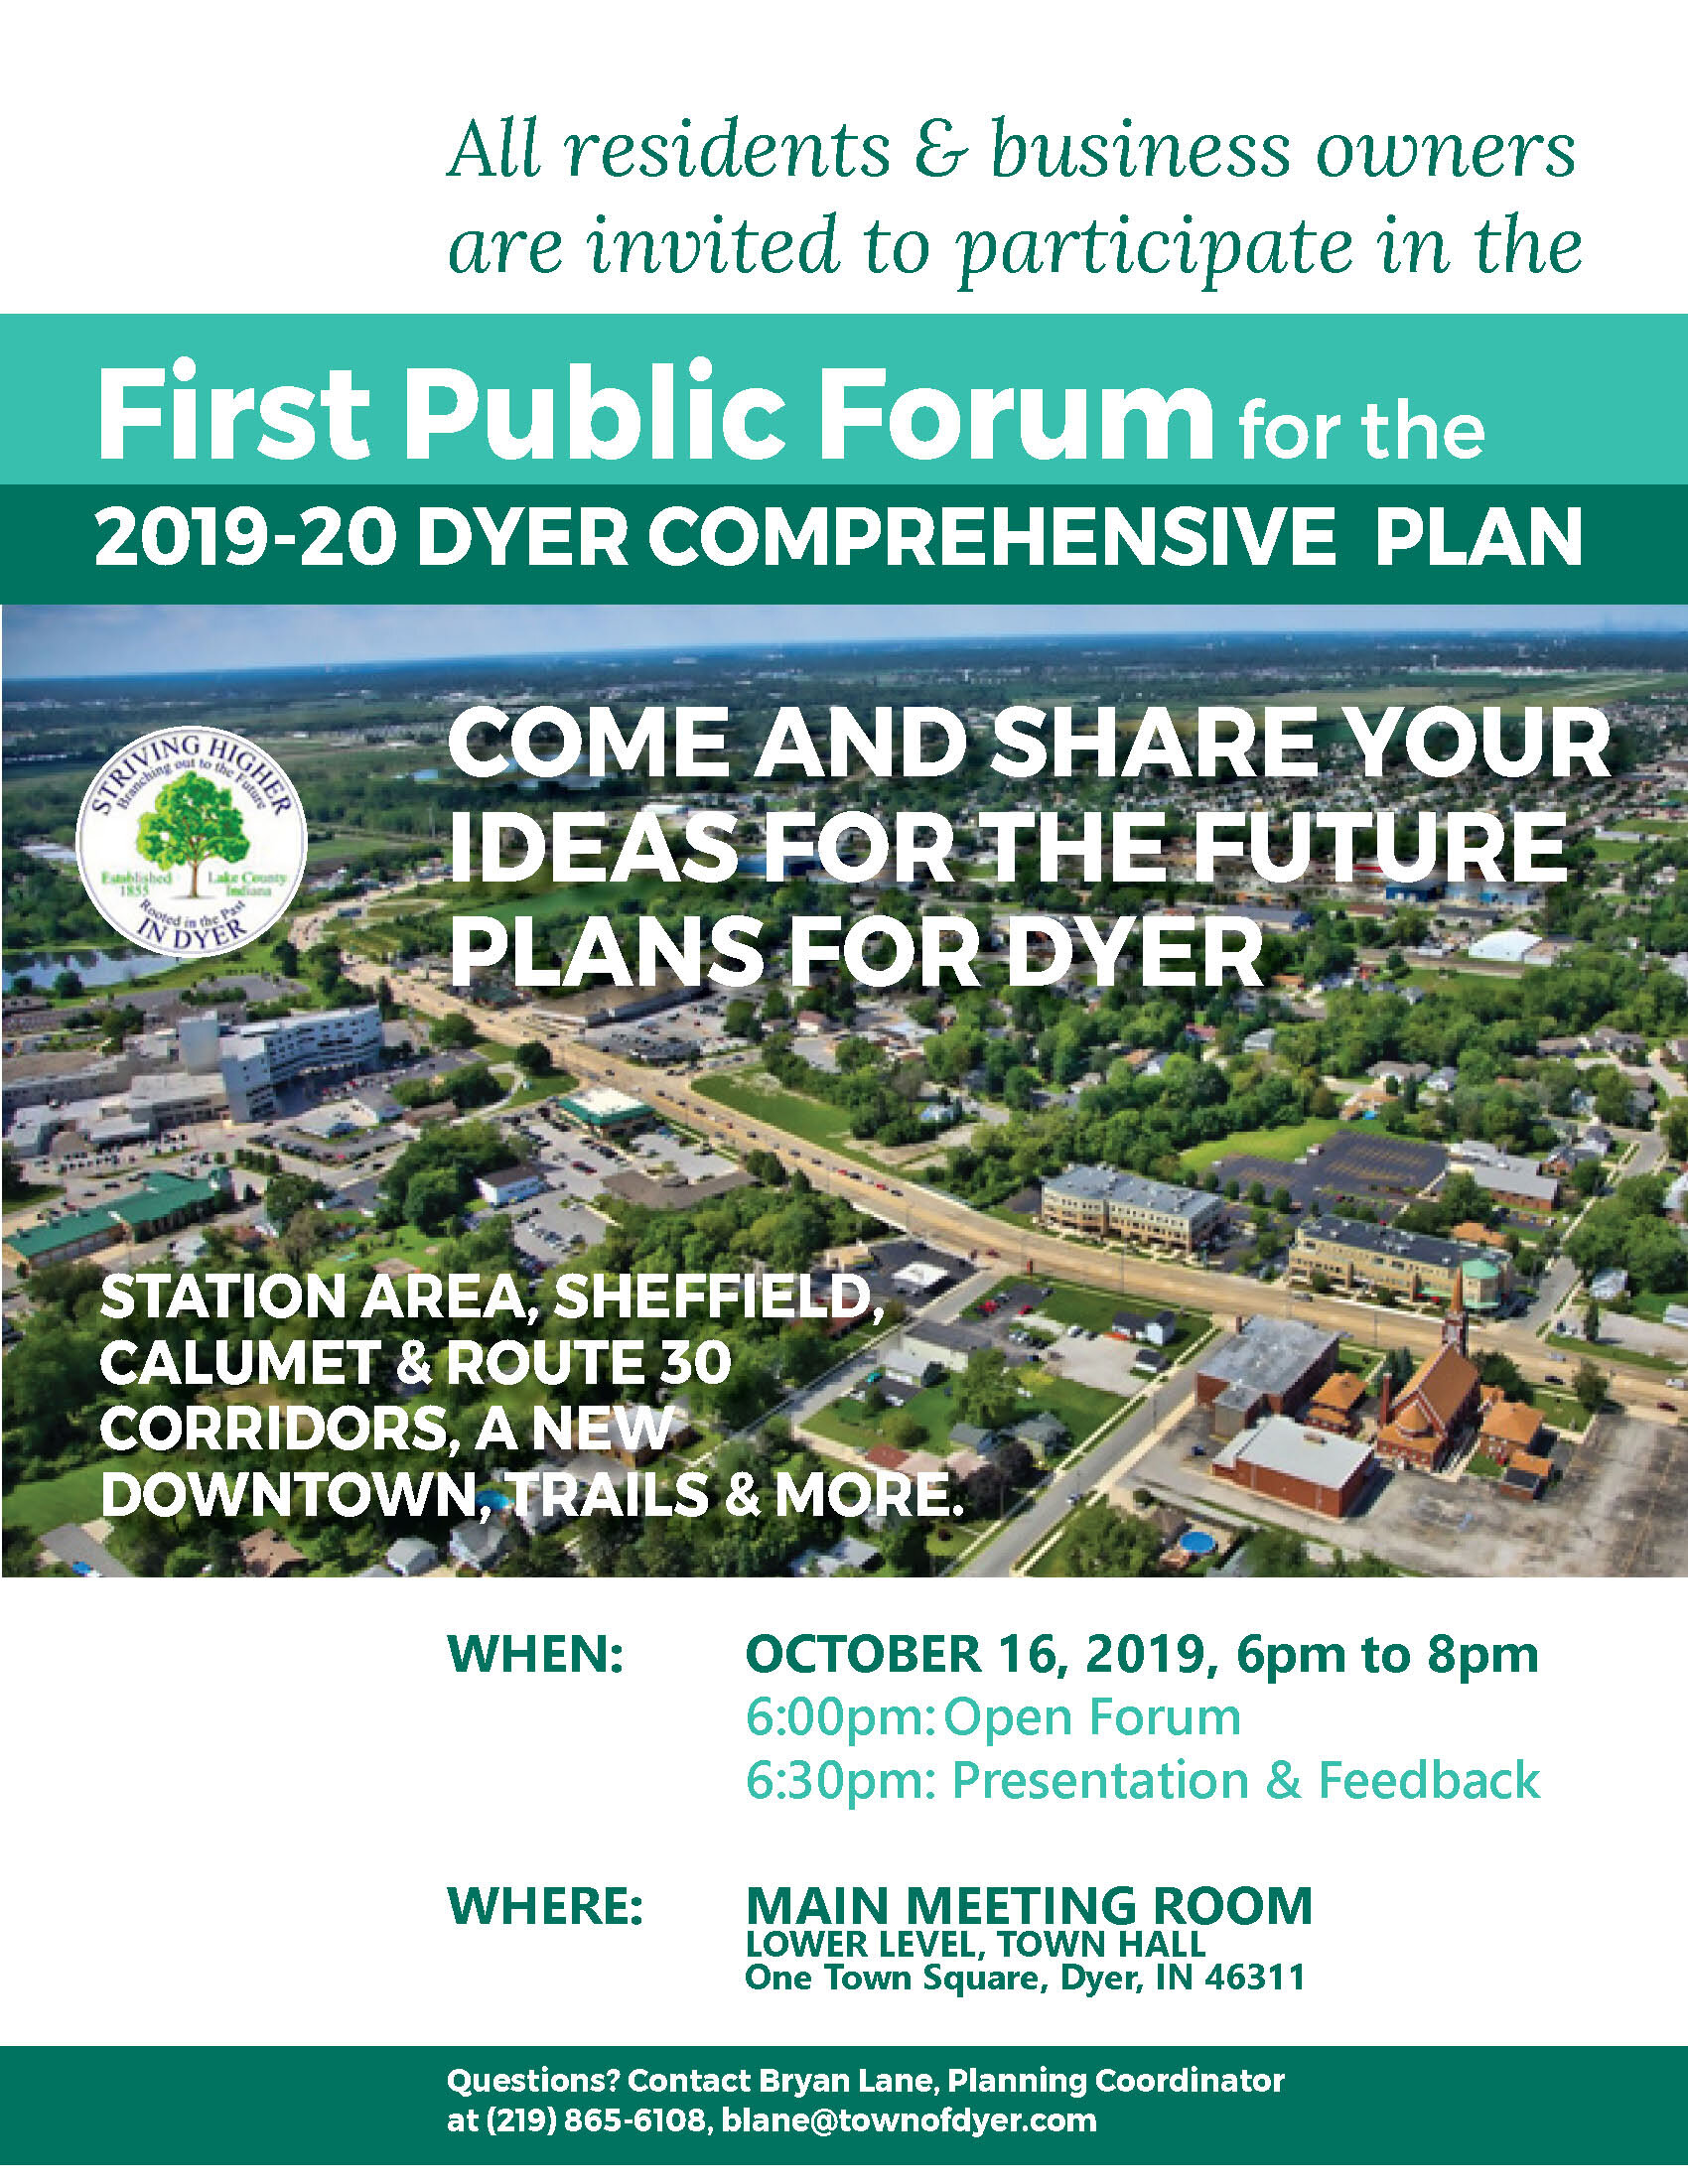 We hope to see you at the First Public Forum. - WE'D LOVE TO HEAR FROM YOU.EMAIL US AT GINKGO@GINKGOPLANNING.COMFERHAT ZERIN AT FZERIN@GINKGOPLANNING.COMCALL US AT 708-738-7389